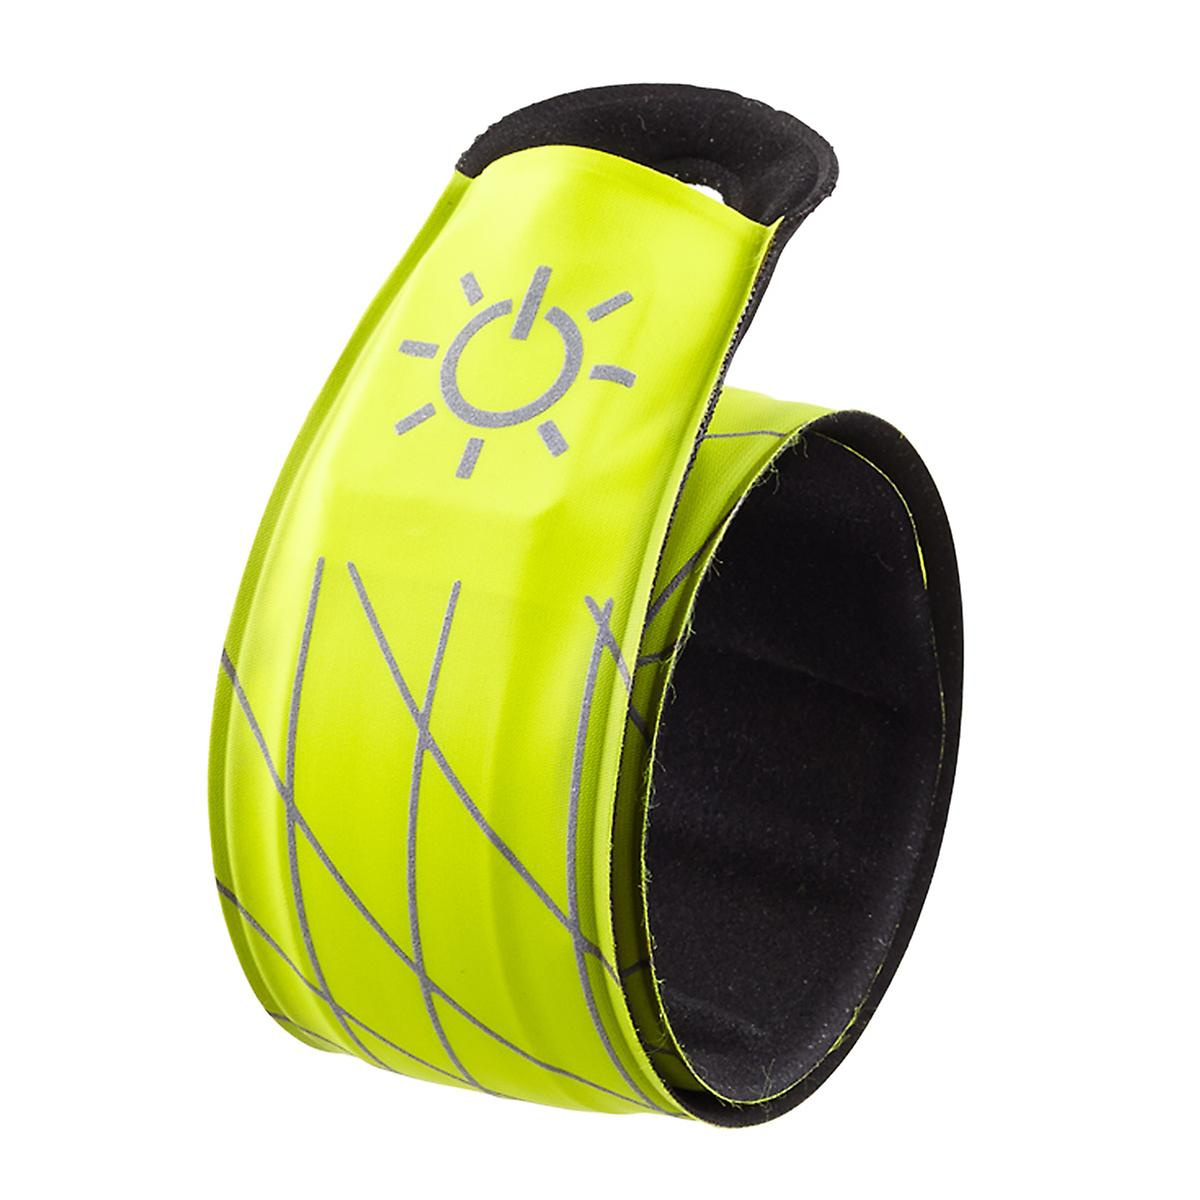 Nite Ize Yellow SlapLit LED Band